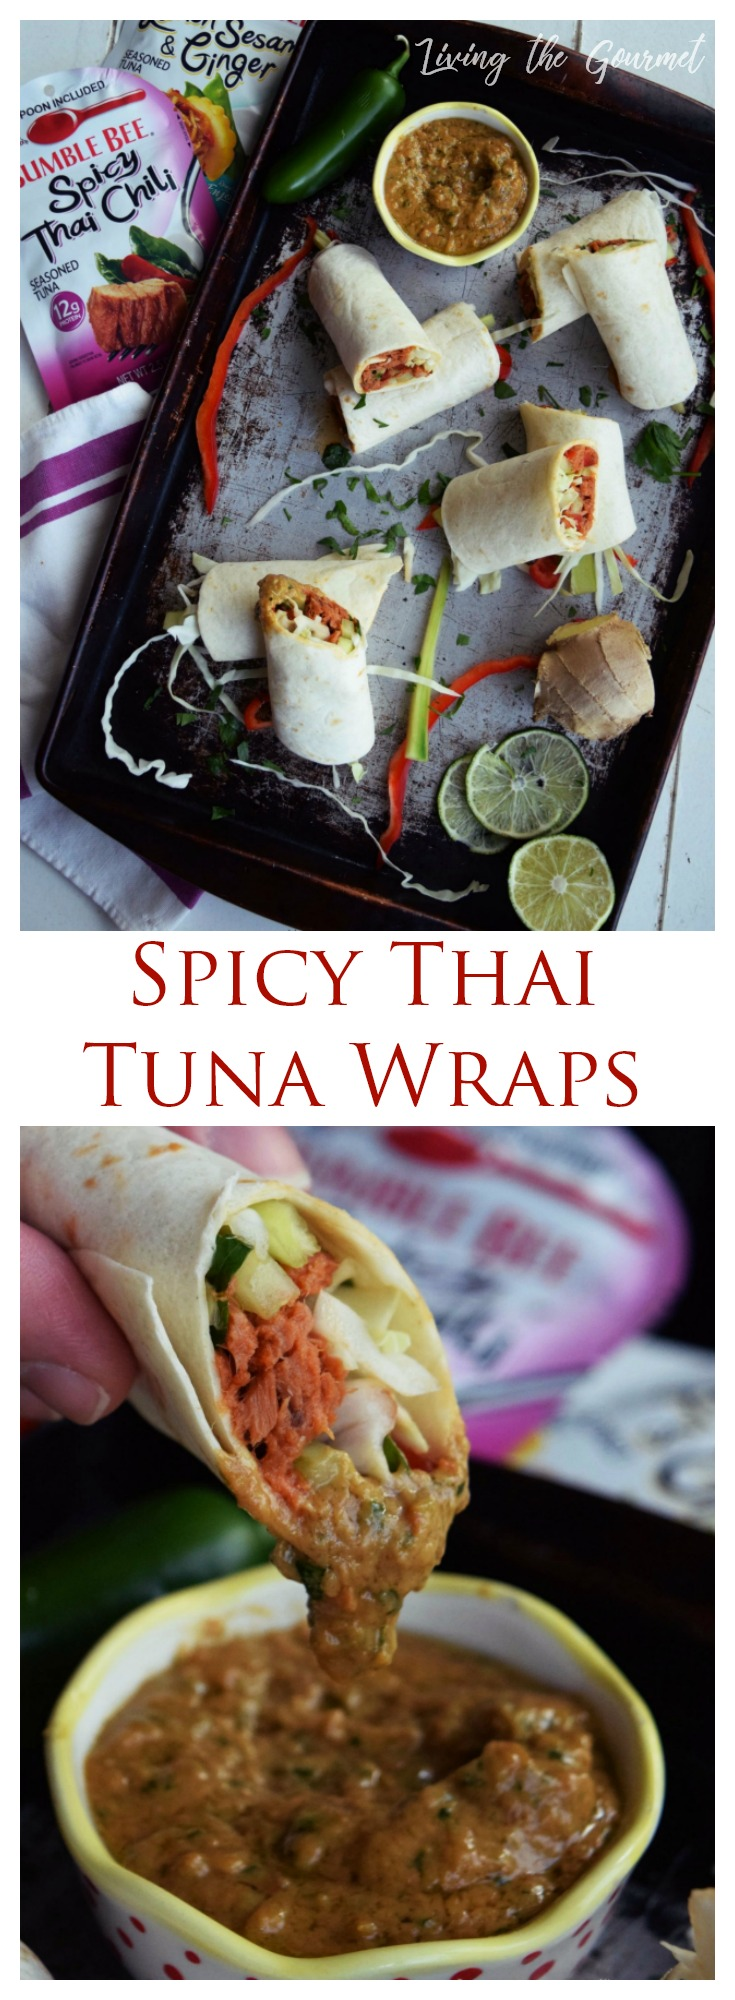 Whether you're on the go or looking for something simple and satisfying, these Spicy Thai Tuna Wraps are sure to hit the spot!